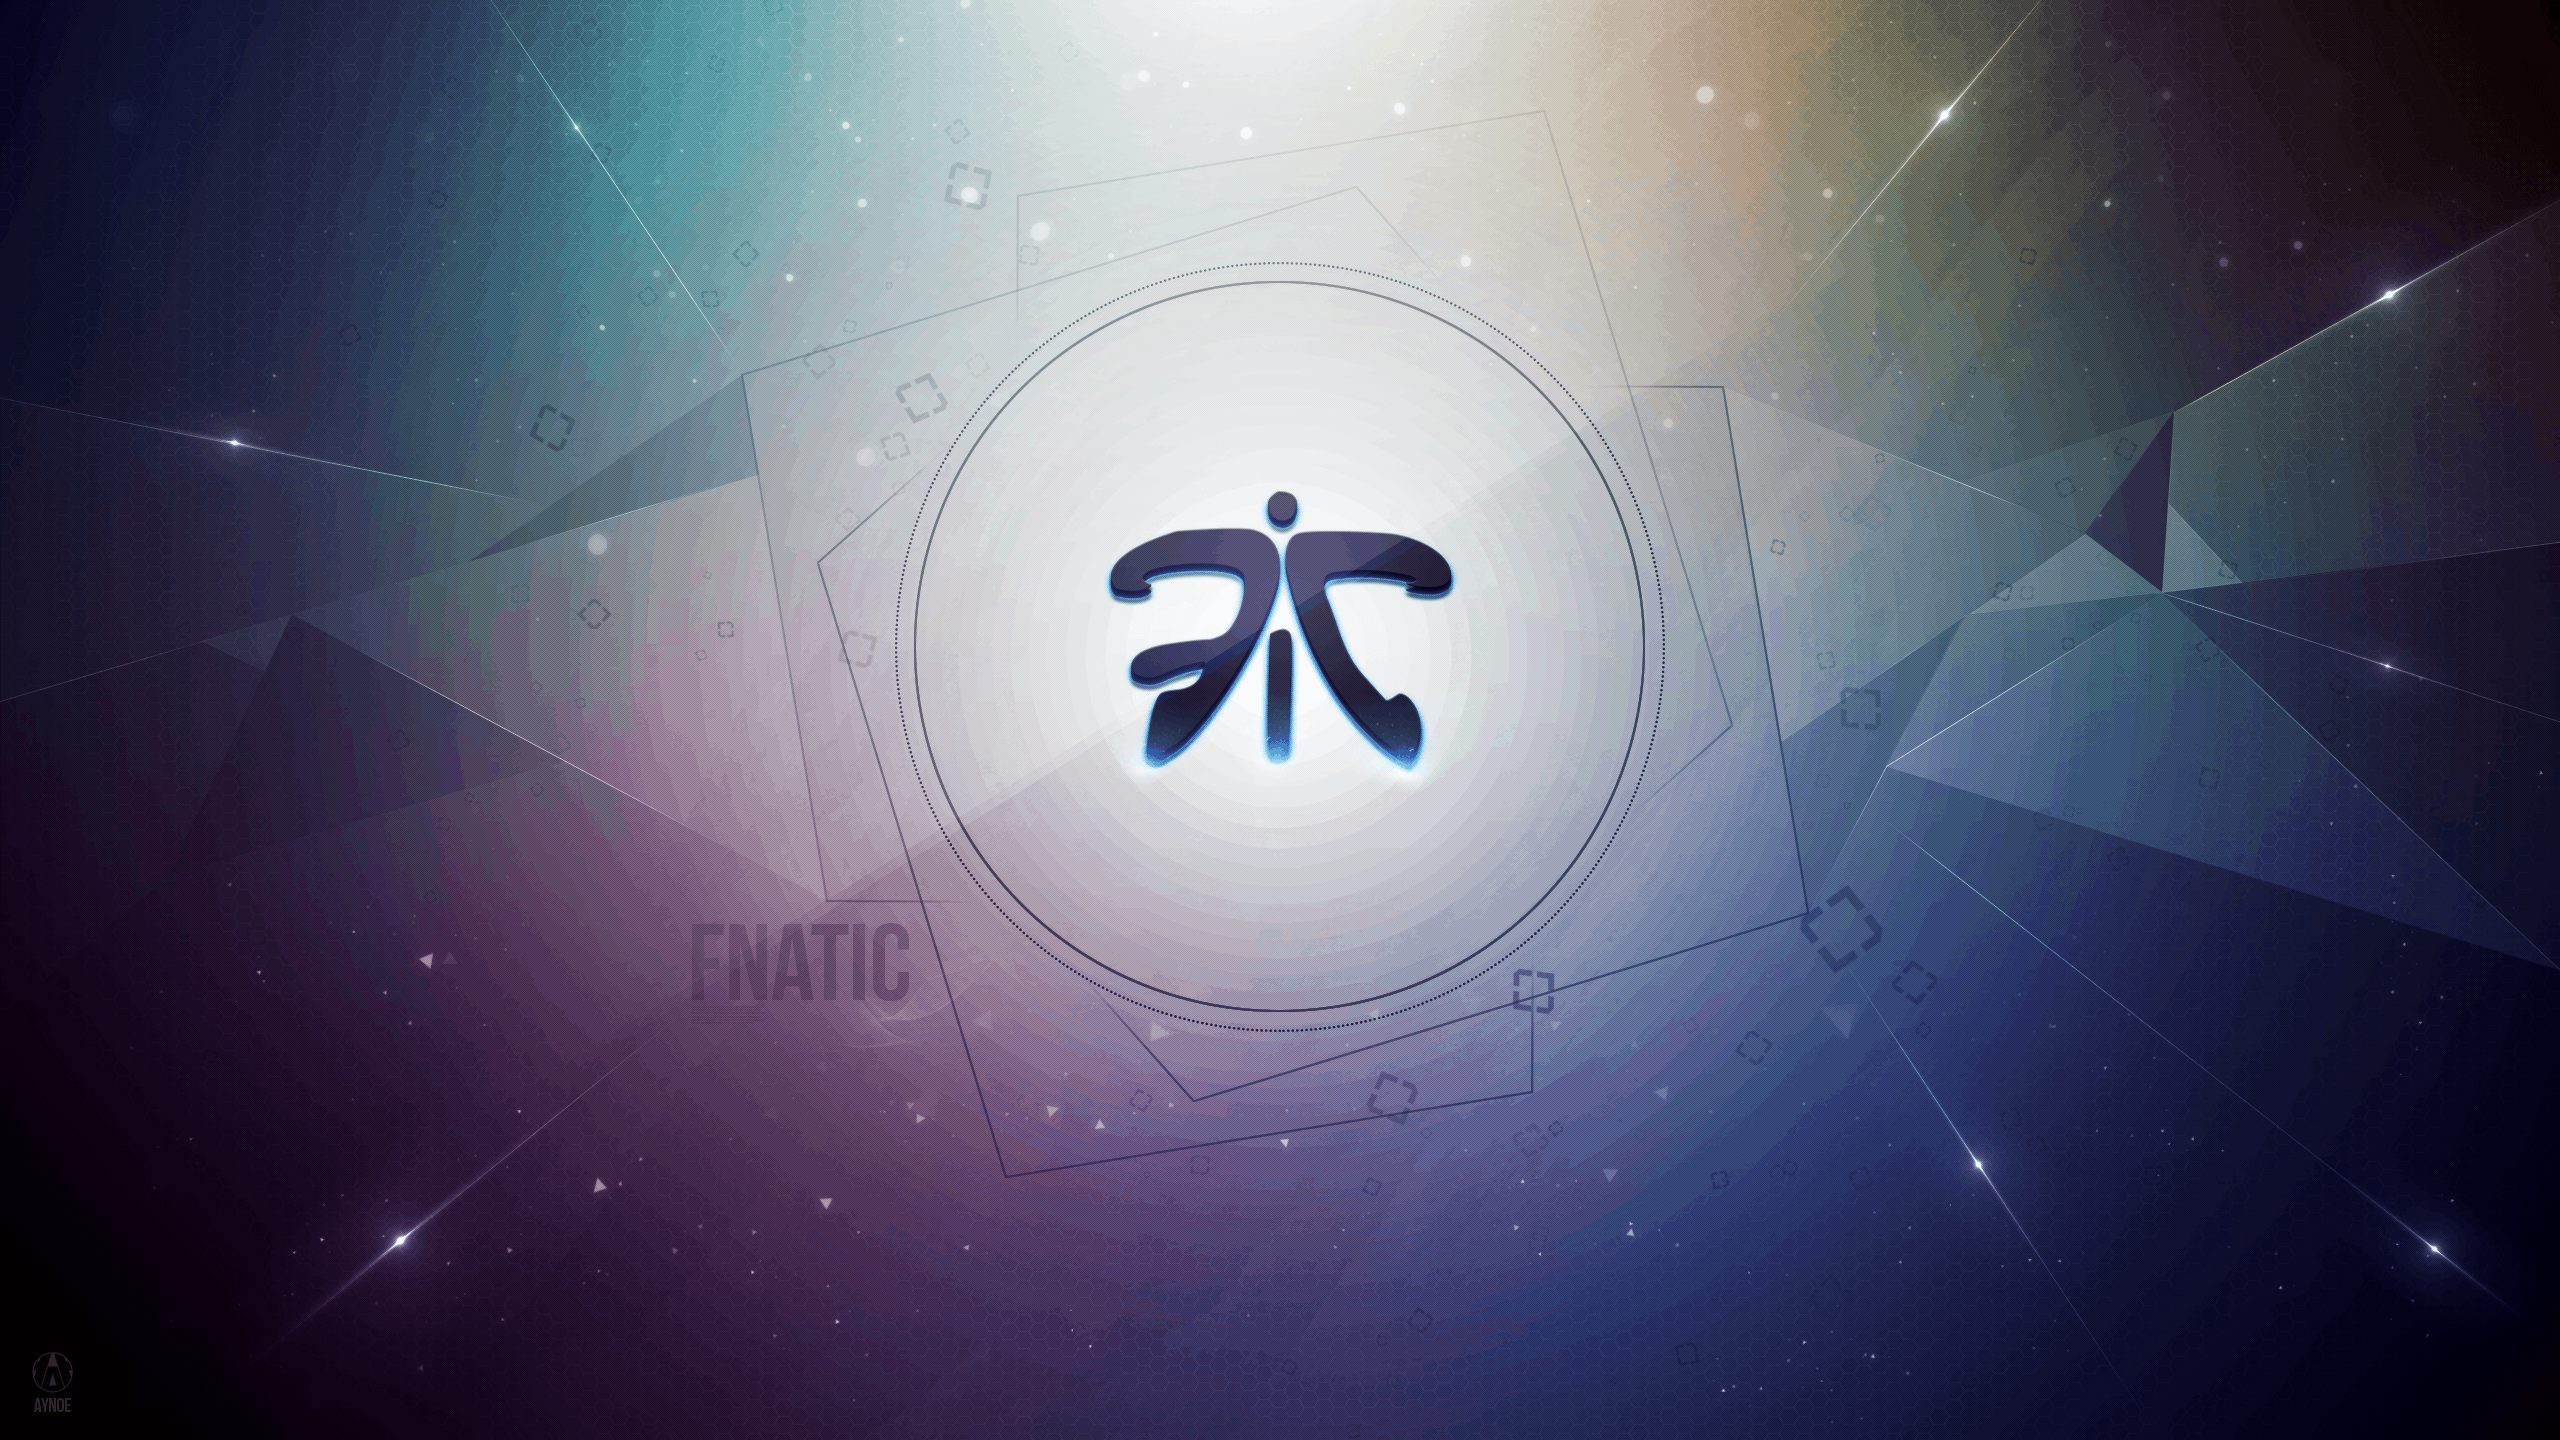 League Of Legends, Fnatic Wallpapers HD / Desktop and Mobile